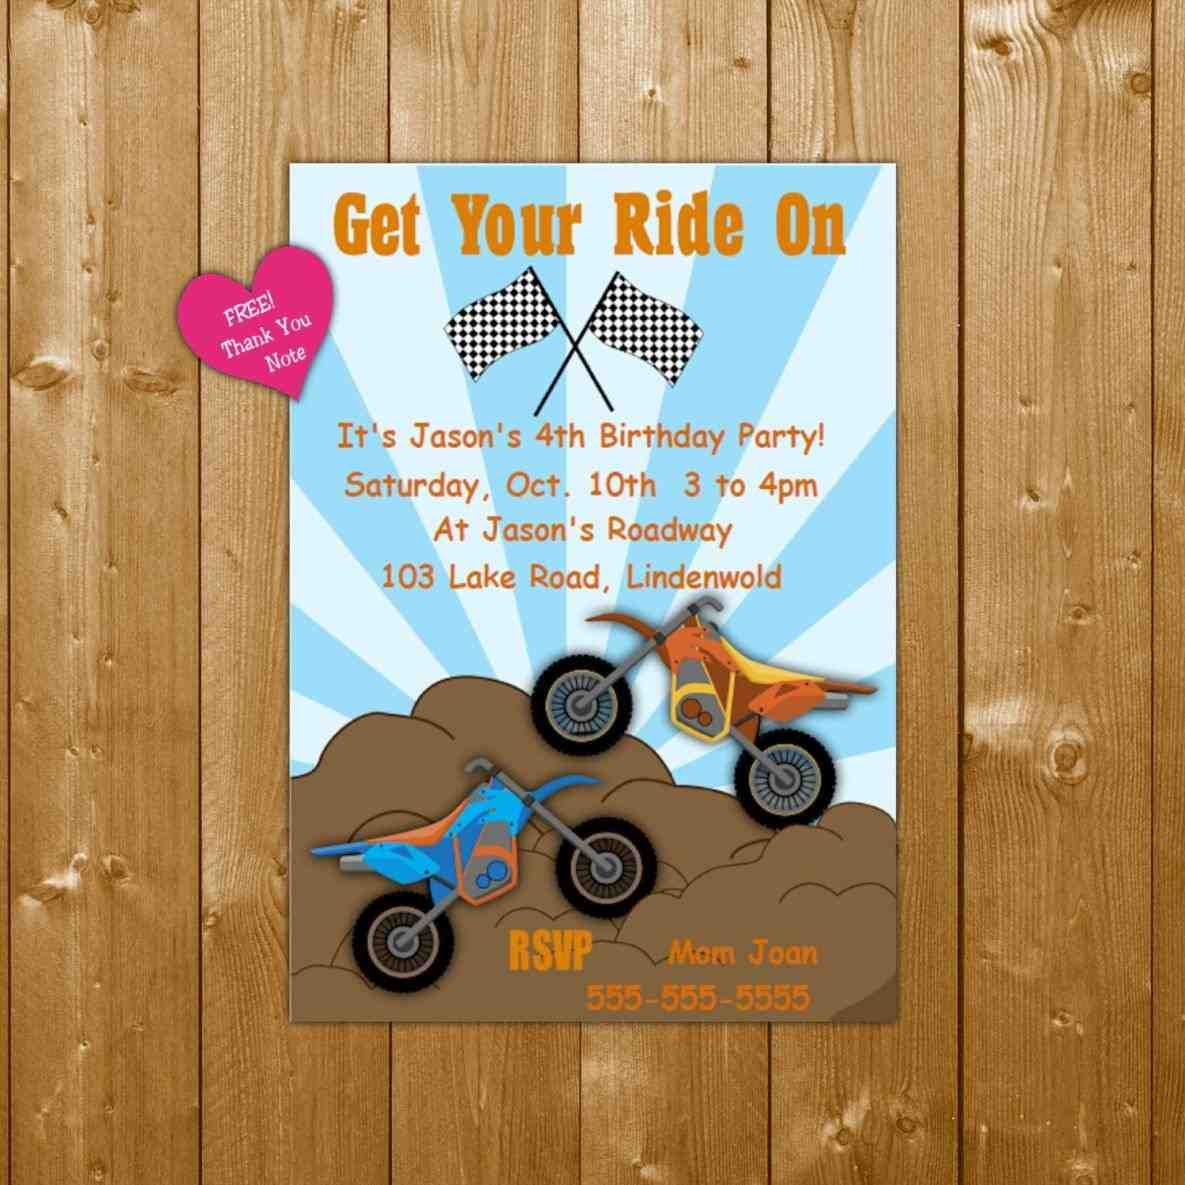 Tiffany blue birthday invitations for a graceful birthday invitation tiffany blue birthday invitations for a graceful birthday invitation design with graceful layout 12 motocross birthday party decorate with dirt bike filmwisefo